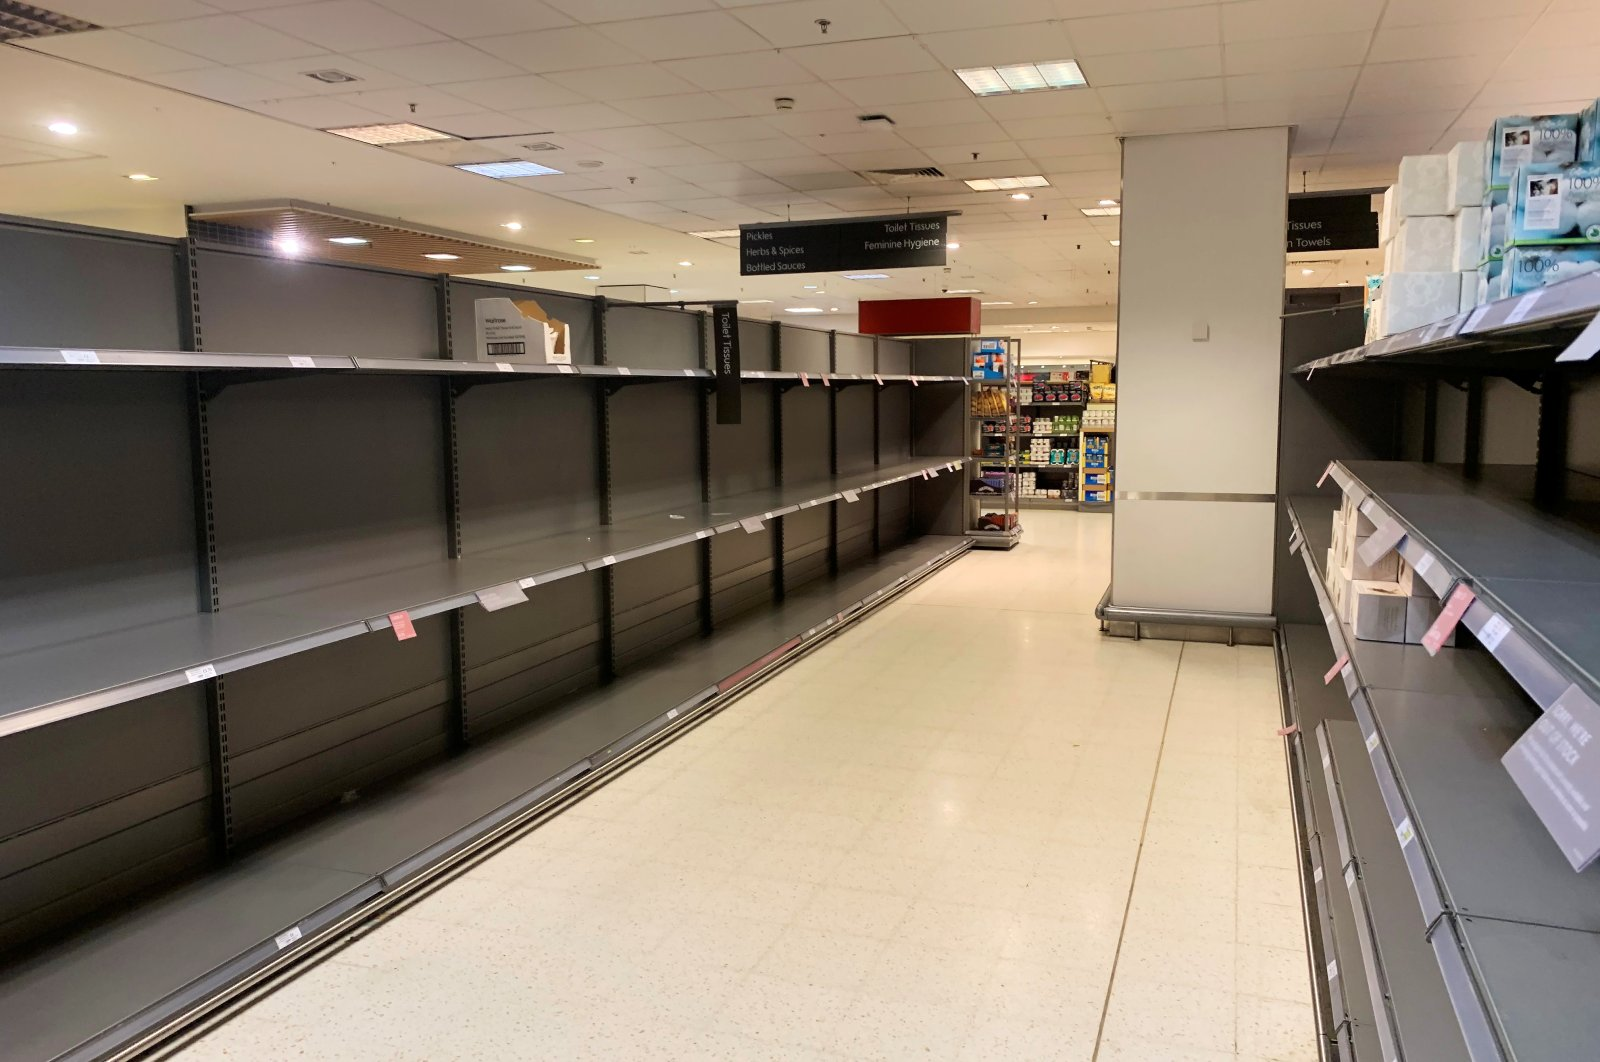 Empty shelves are seen at a supermarket in Canary Wharf, as the number of coronavirus cases grows around the world and as European stocks plunge into bear market territory, in London, Britain March 9, 2020. (Reuters Photo)